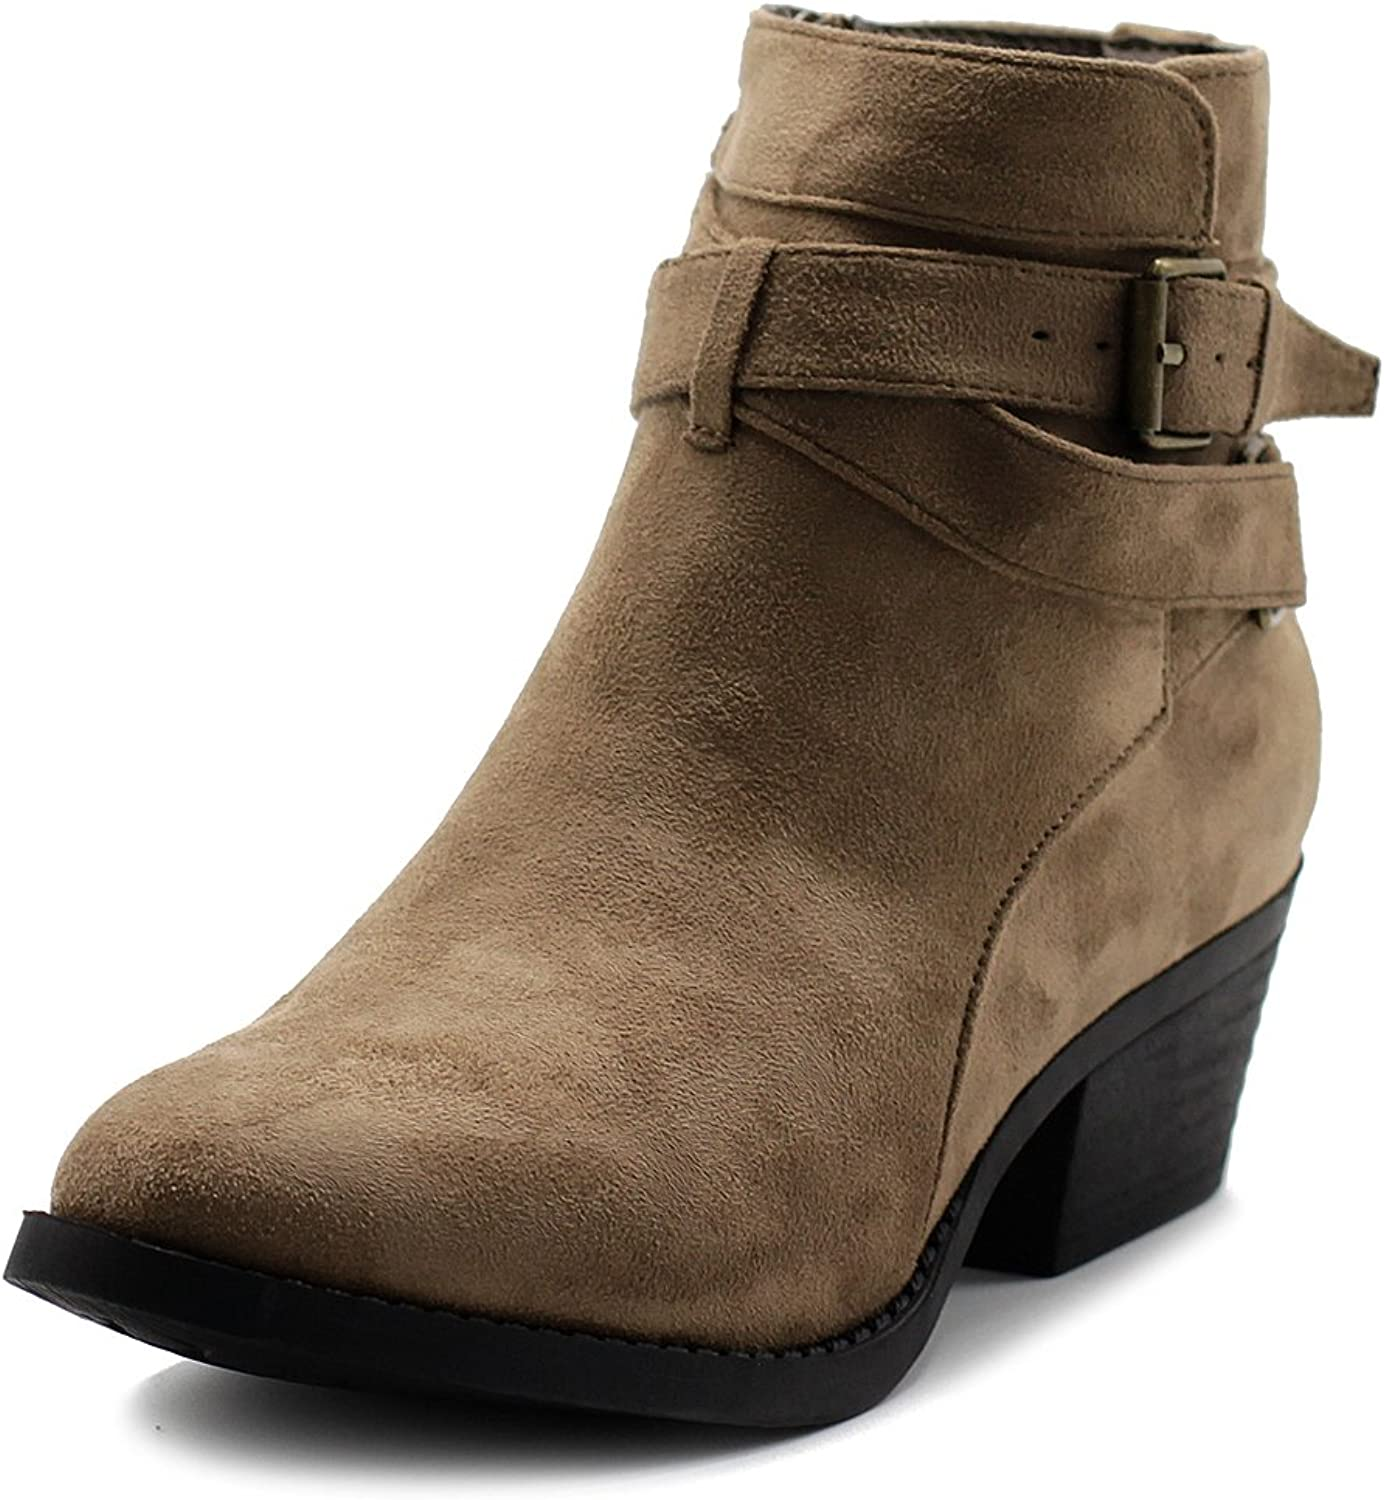 Ollio Women's shoes Faux Suede Buckle Straps Stacked Heel Ankle Boots